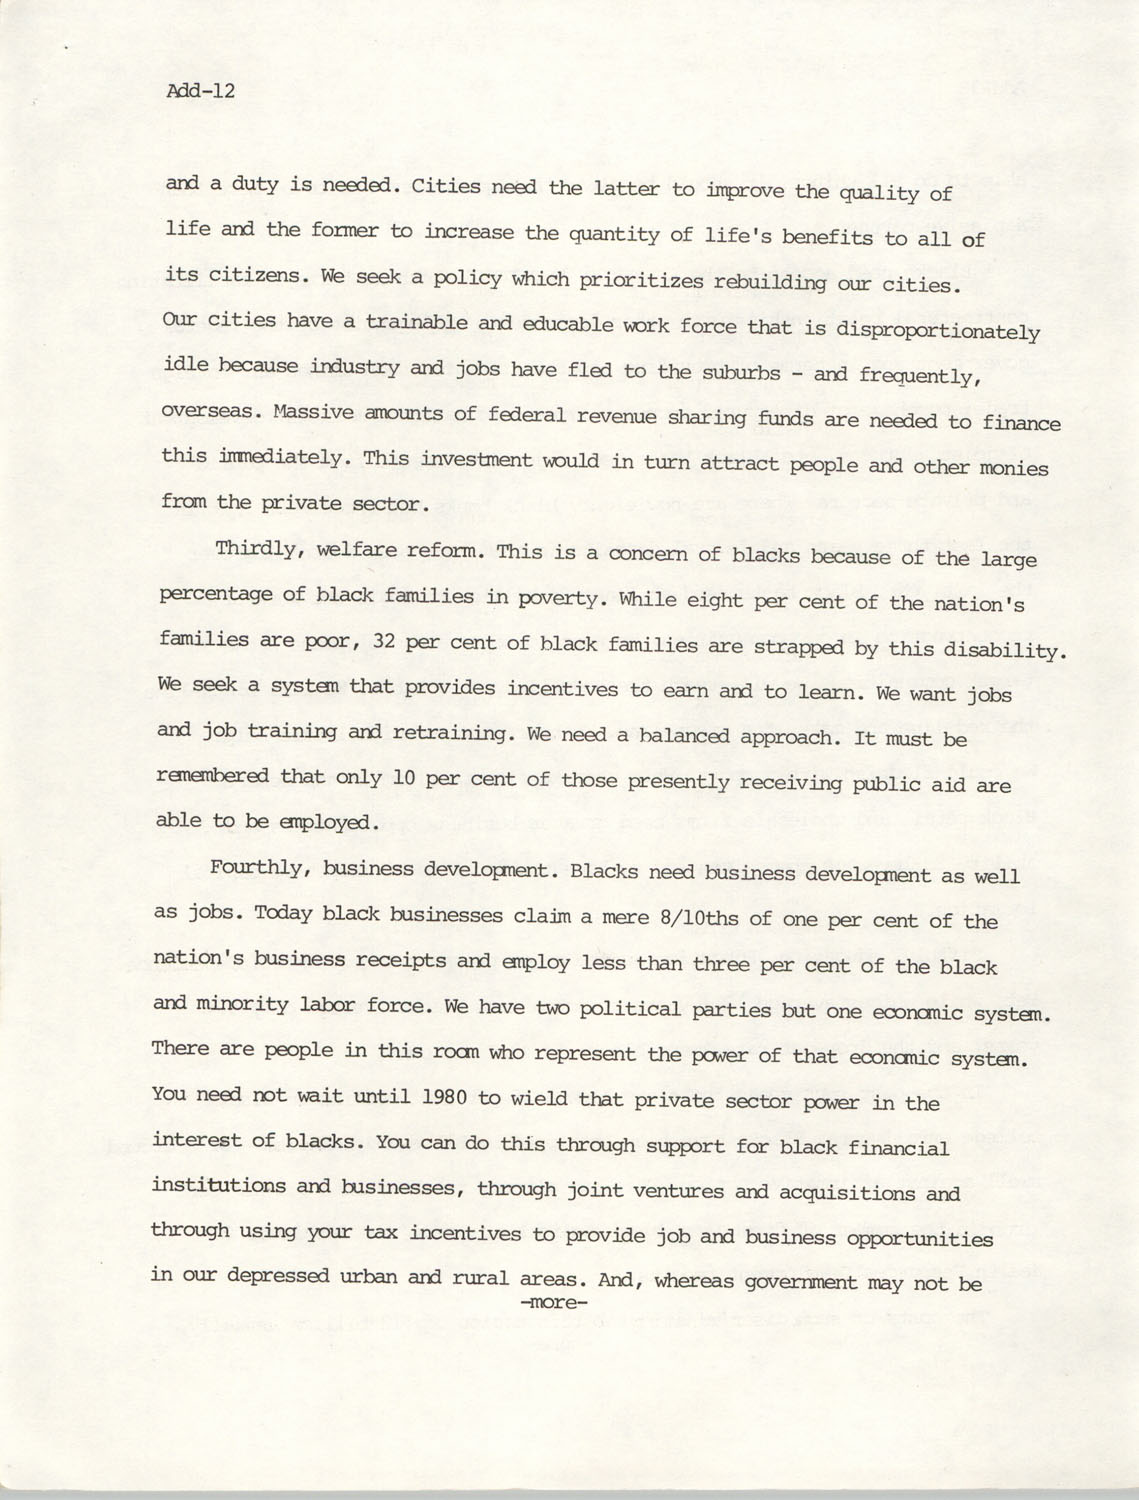 Speech Before the Republican National Committee, Page 12